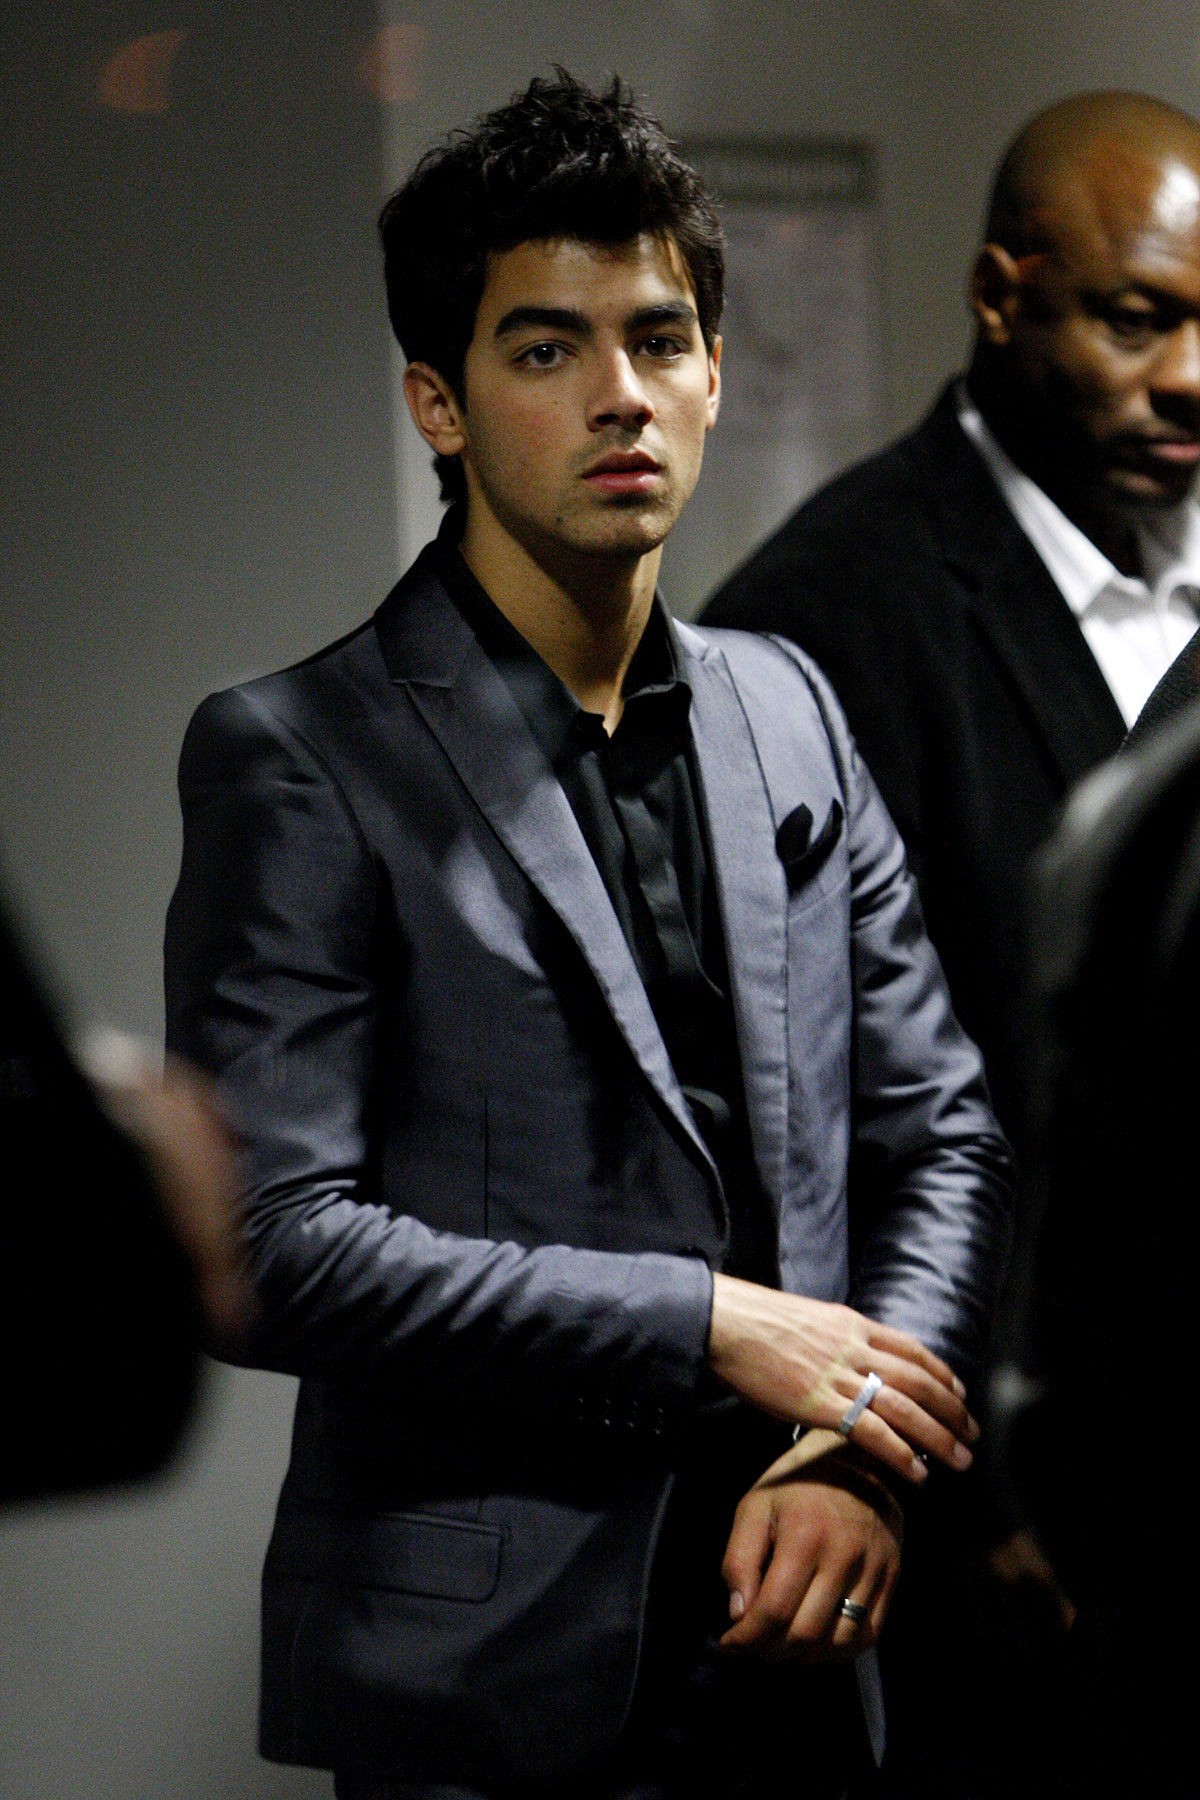 PHOTO GALLERY: The Jonas Brothers Jet Out